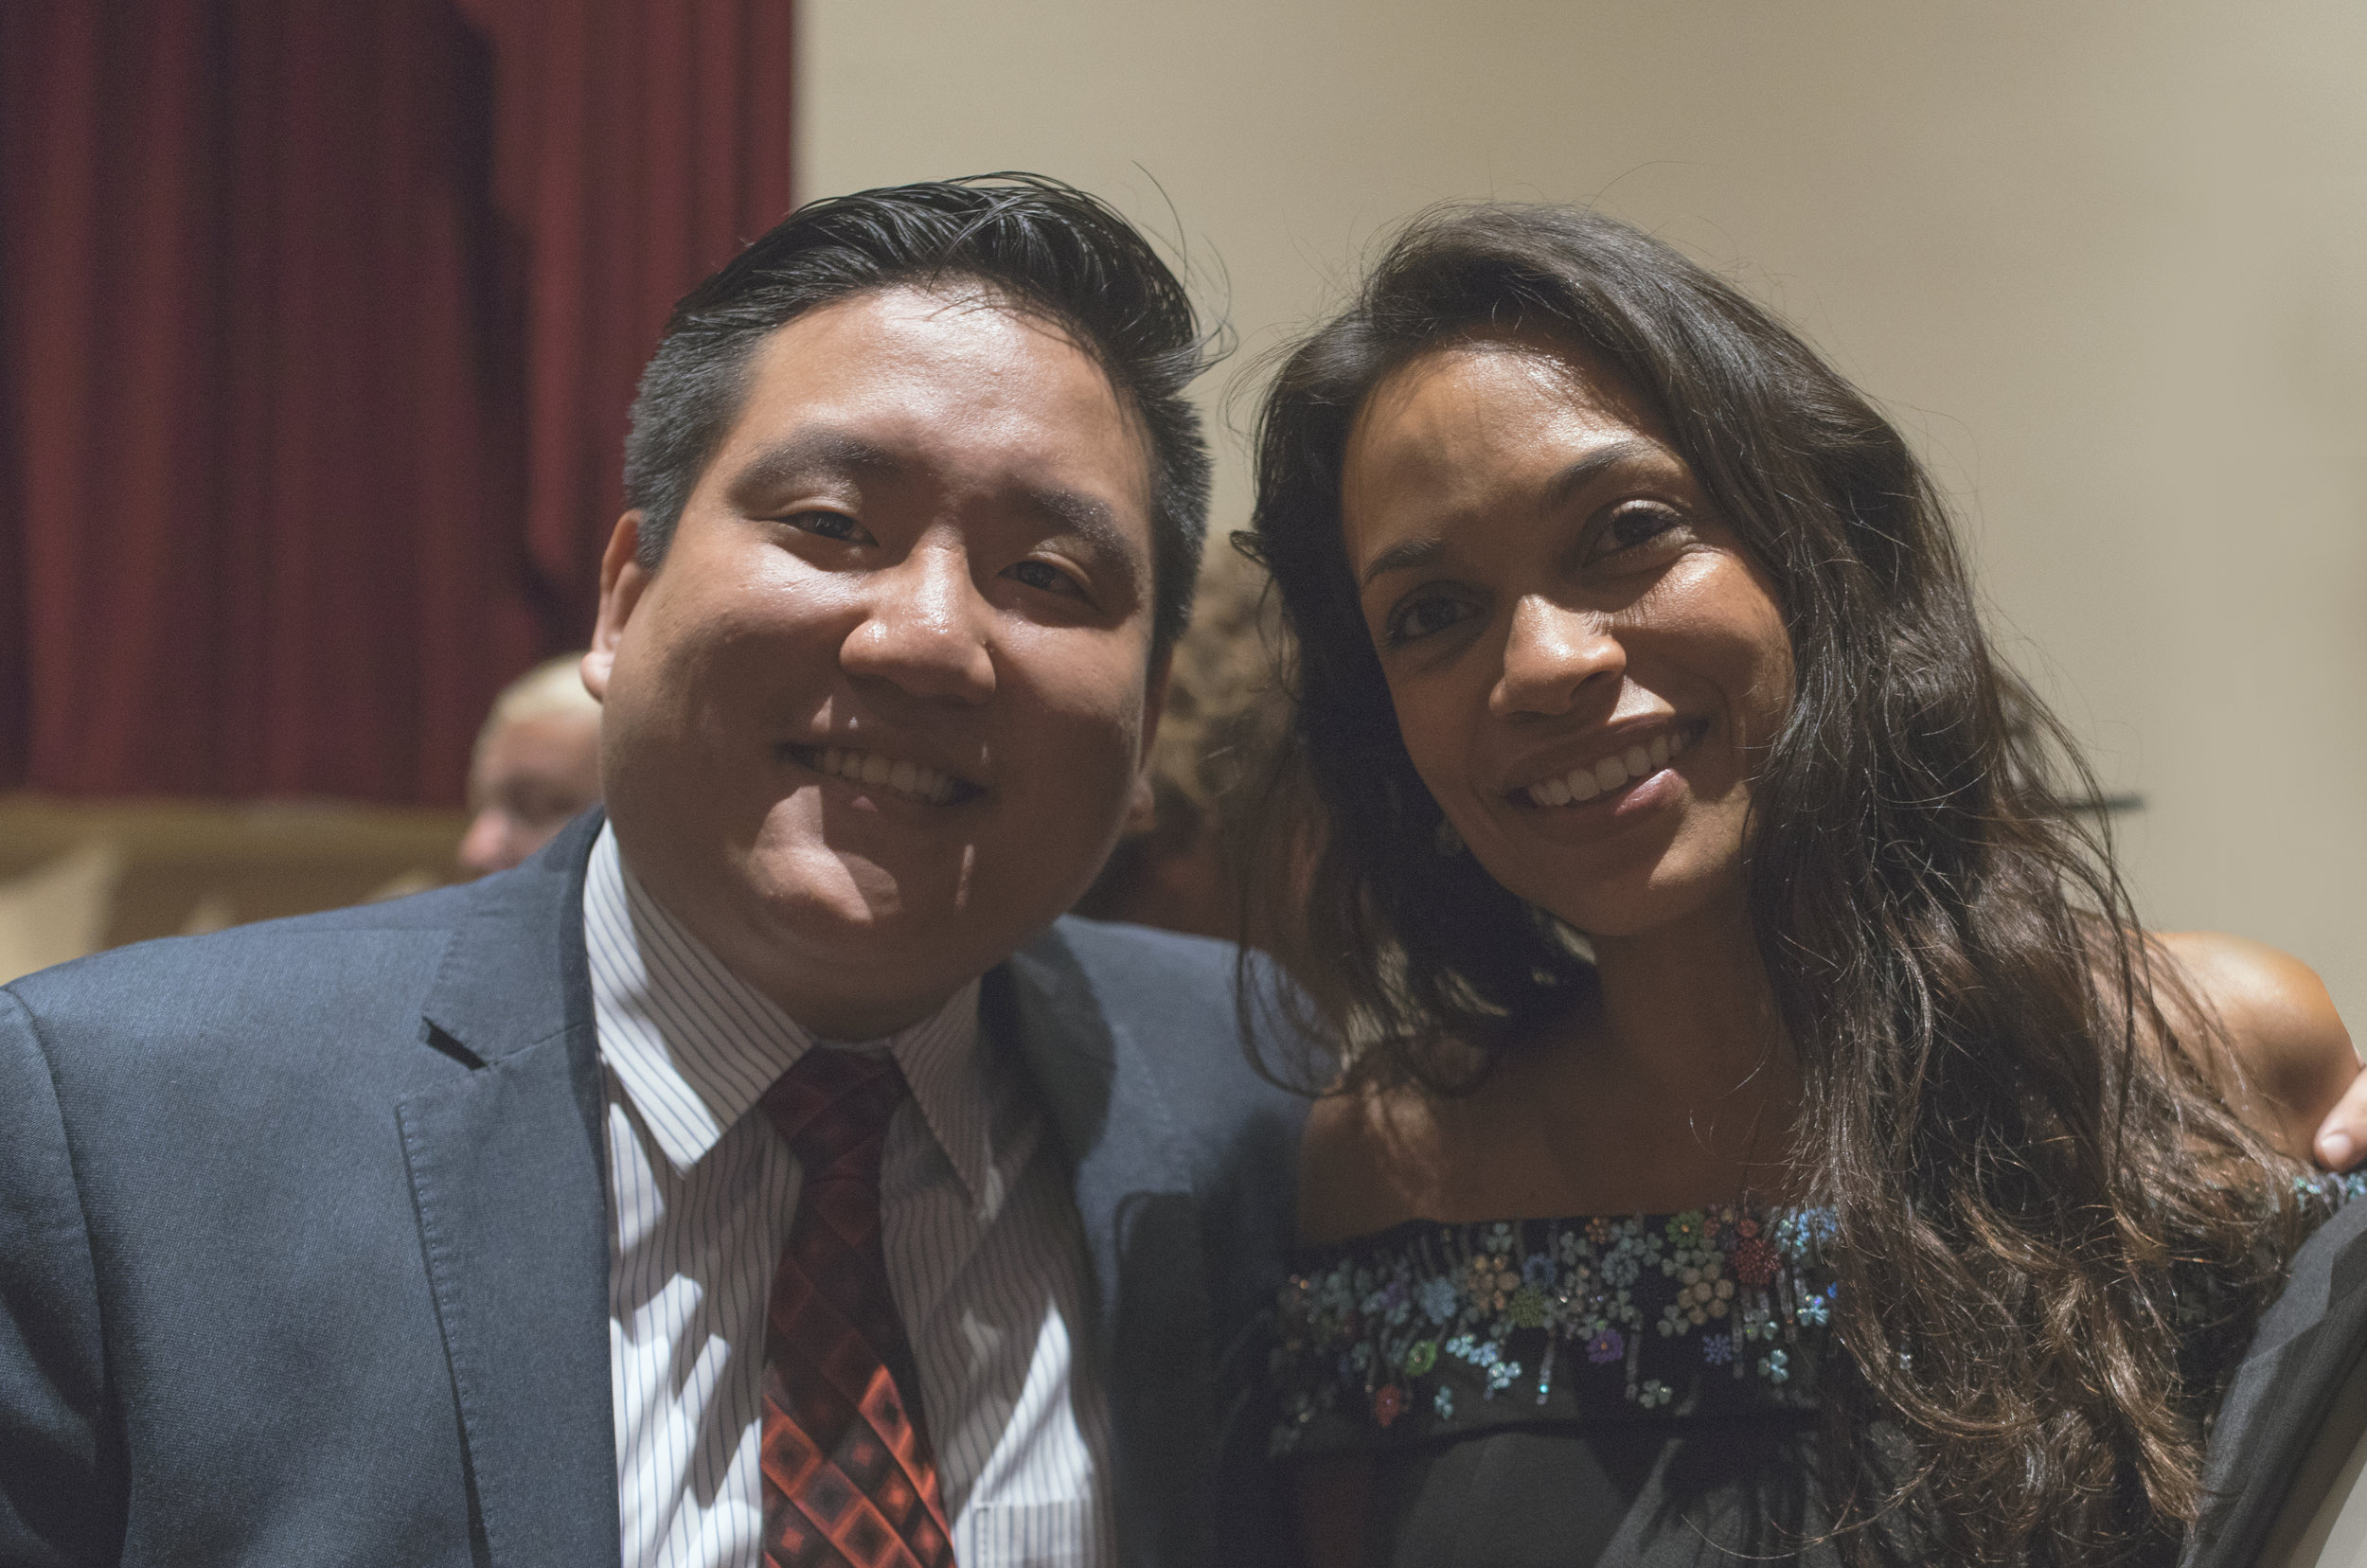 Broadway Stages General Counsel Anthony K.C. Fong Esq. with Rosario Dawson, Recipient of the varIEty emsemble award